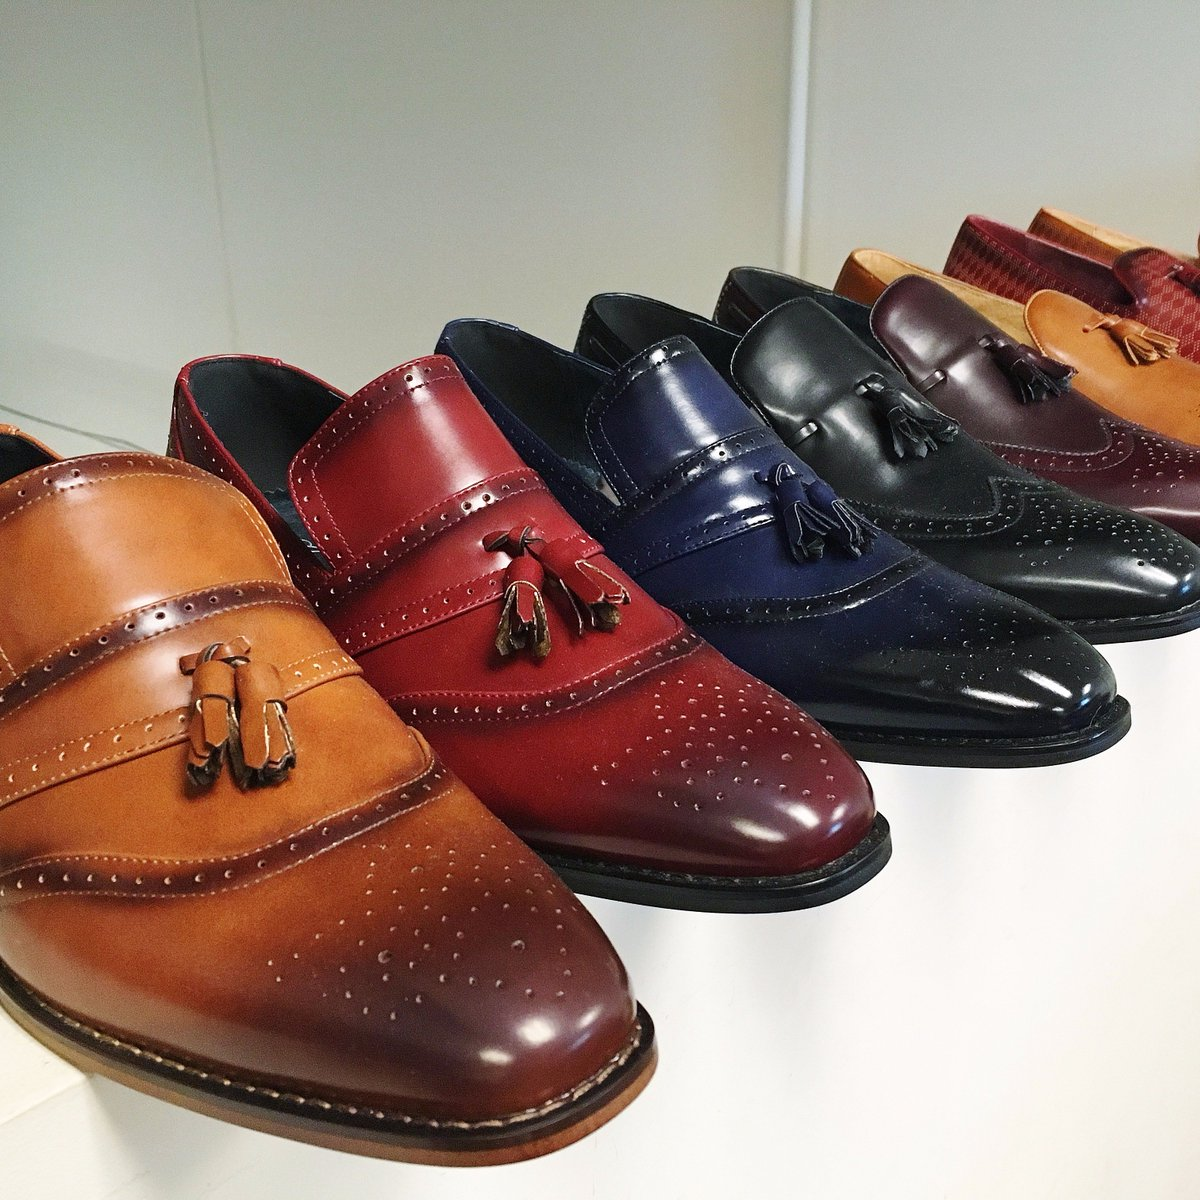 f1c0646244cc Just Men's Shoes on Twitter: